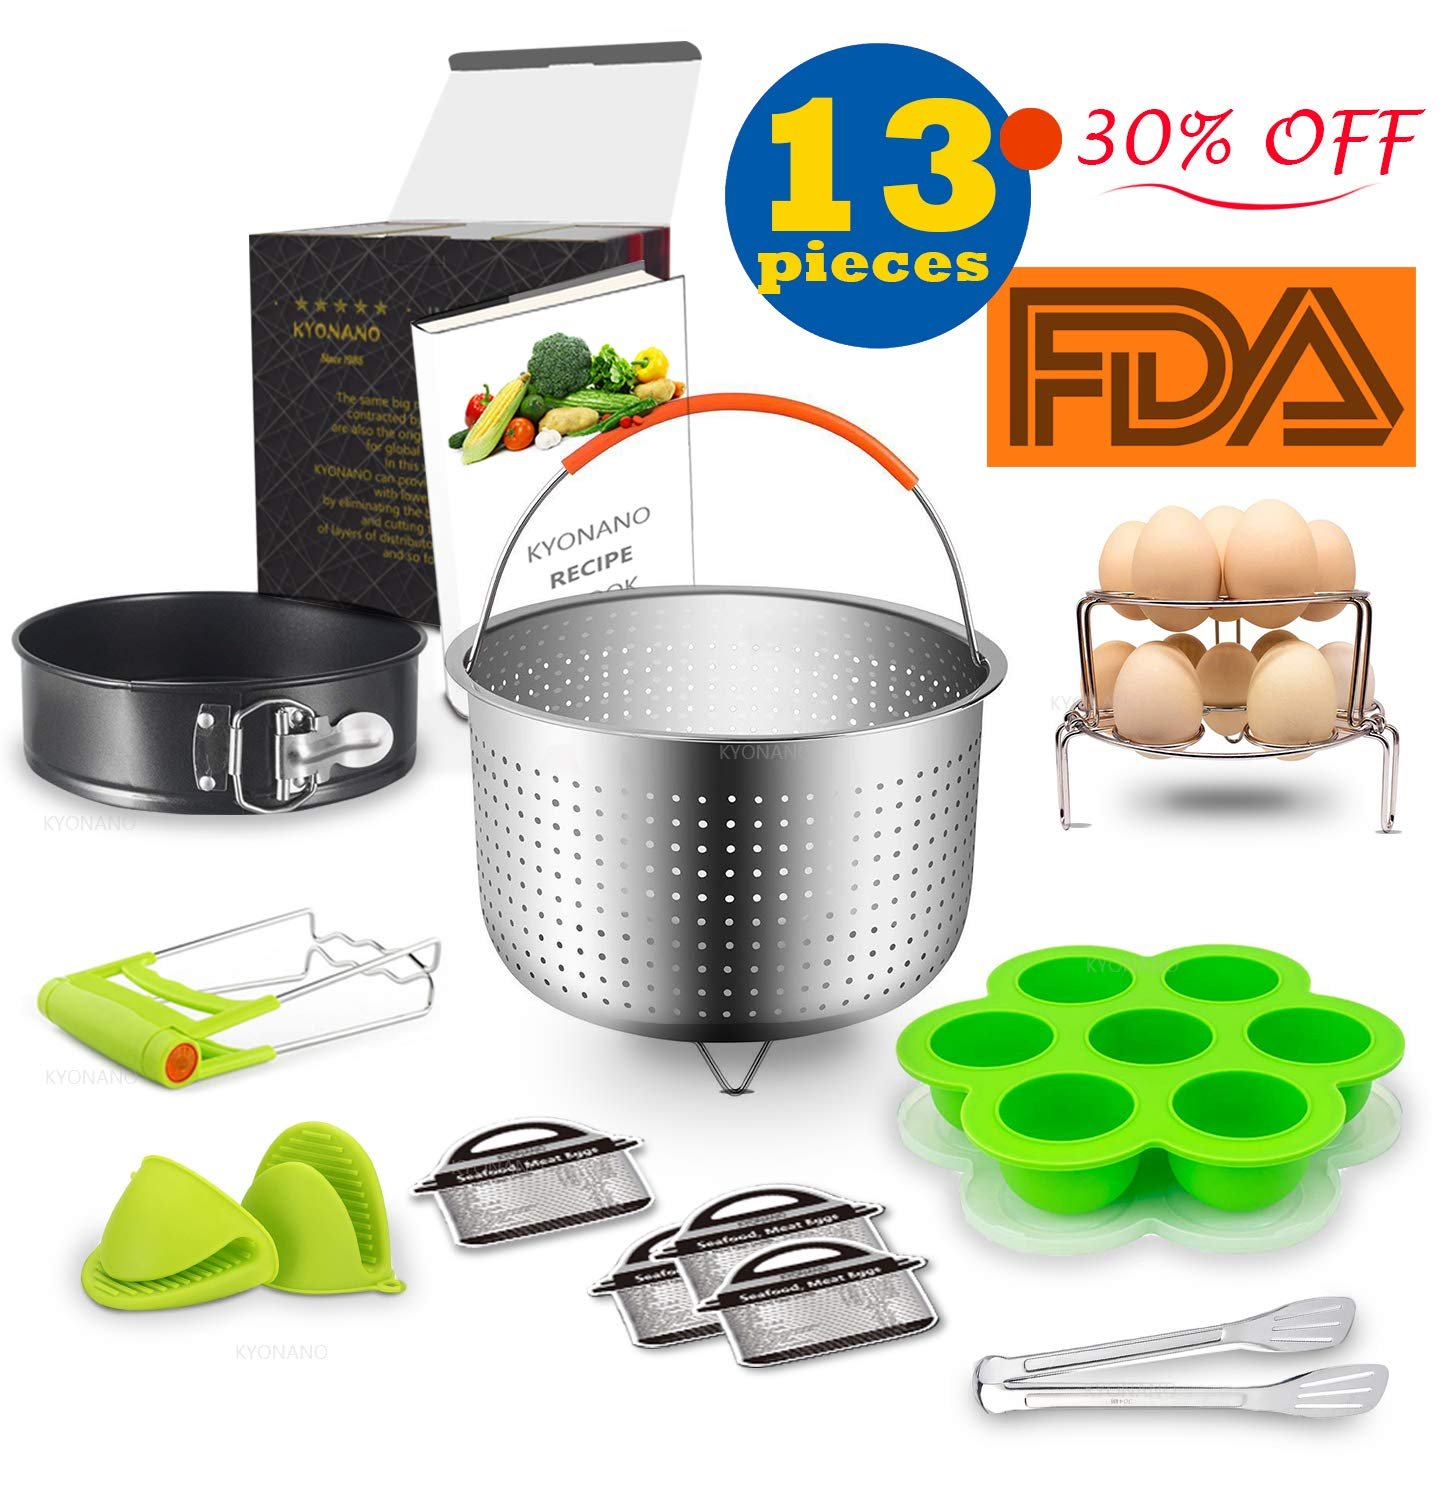 Kyonano 13 Pcs Pressure Cooker Accessories Compatible with Instant Pot 5,6,8QT, Ninja Foodi and Other Electric Pressure Cookers, Include Steamer Basket, Springform Pan, Egg Steamer Rack and More